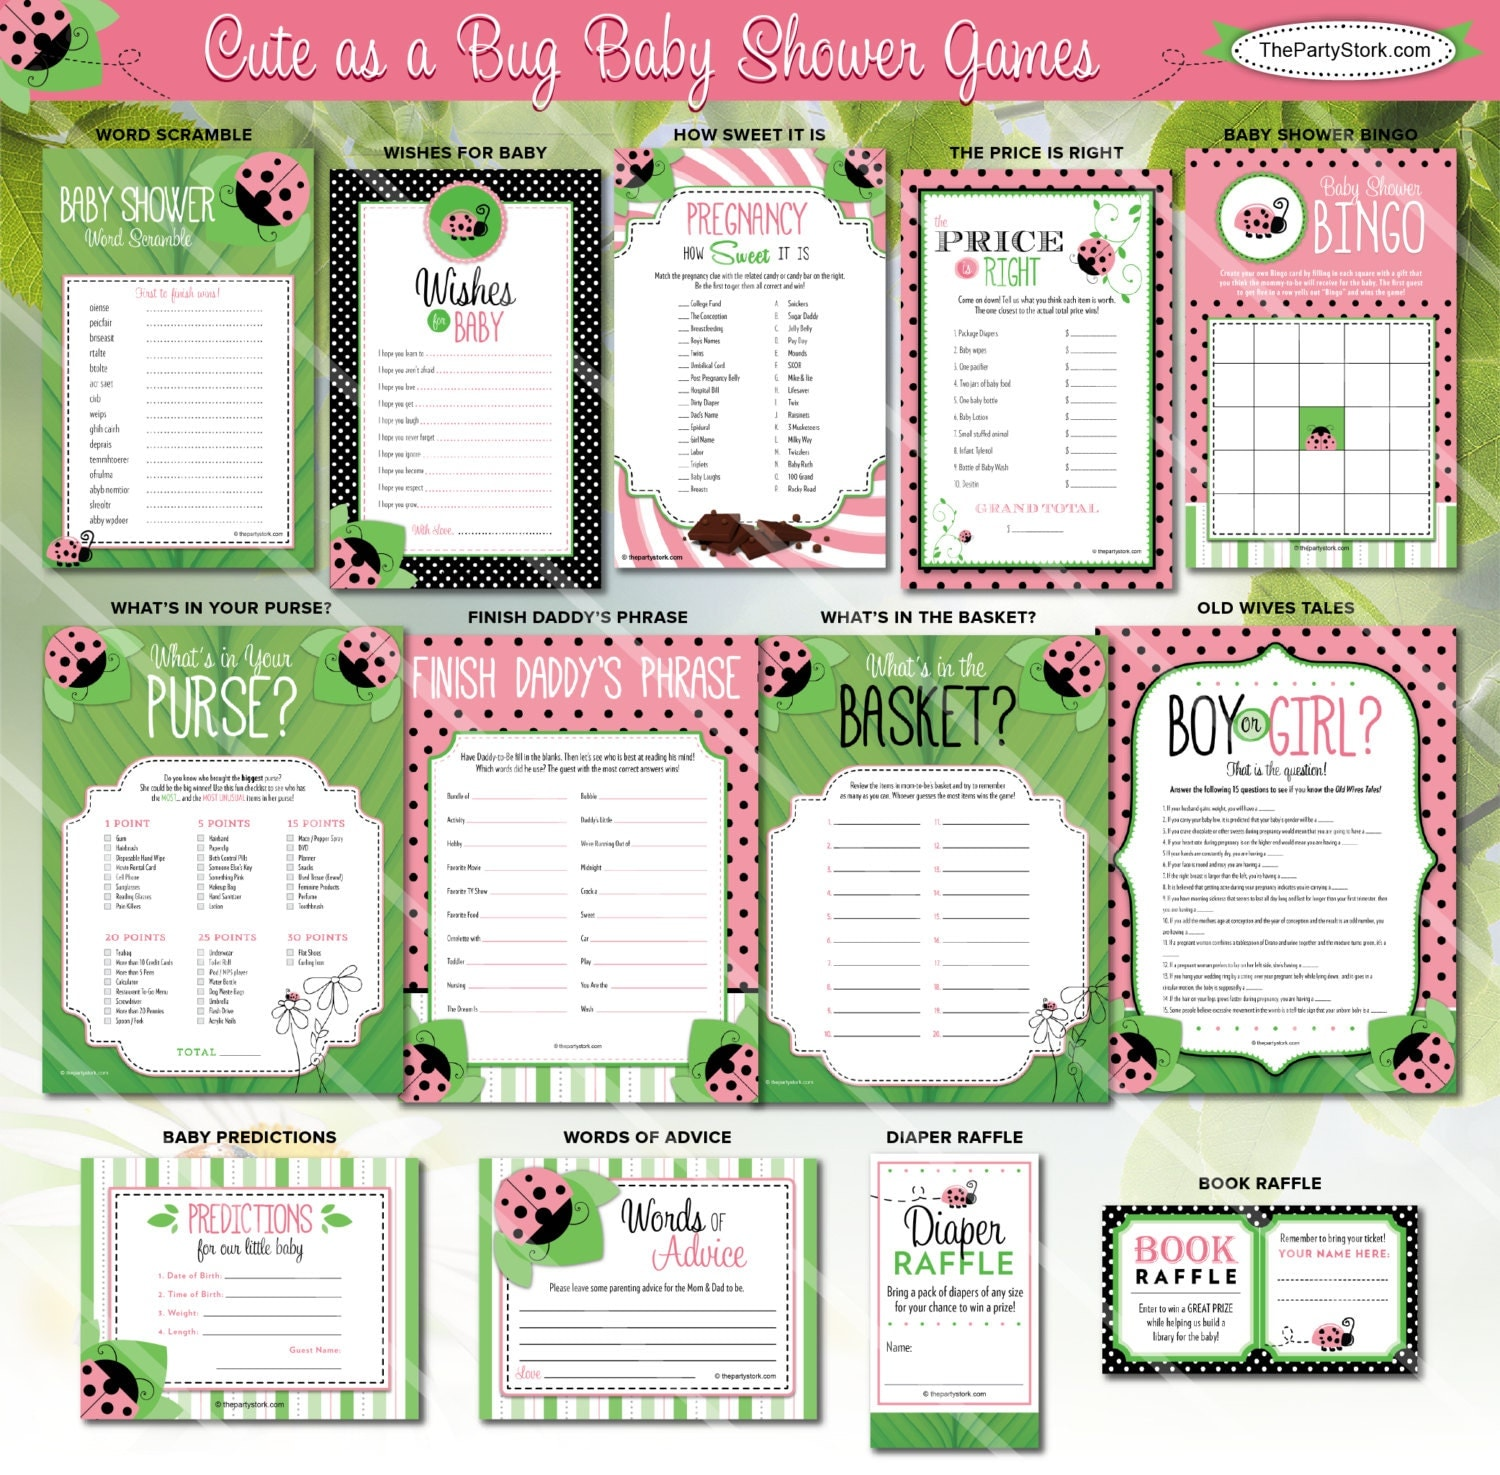 ladybug baby shower games cute as a bug theme fun girl. Black Bedroom Furniture Sets. Home Design Ideas